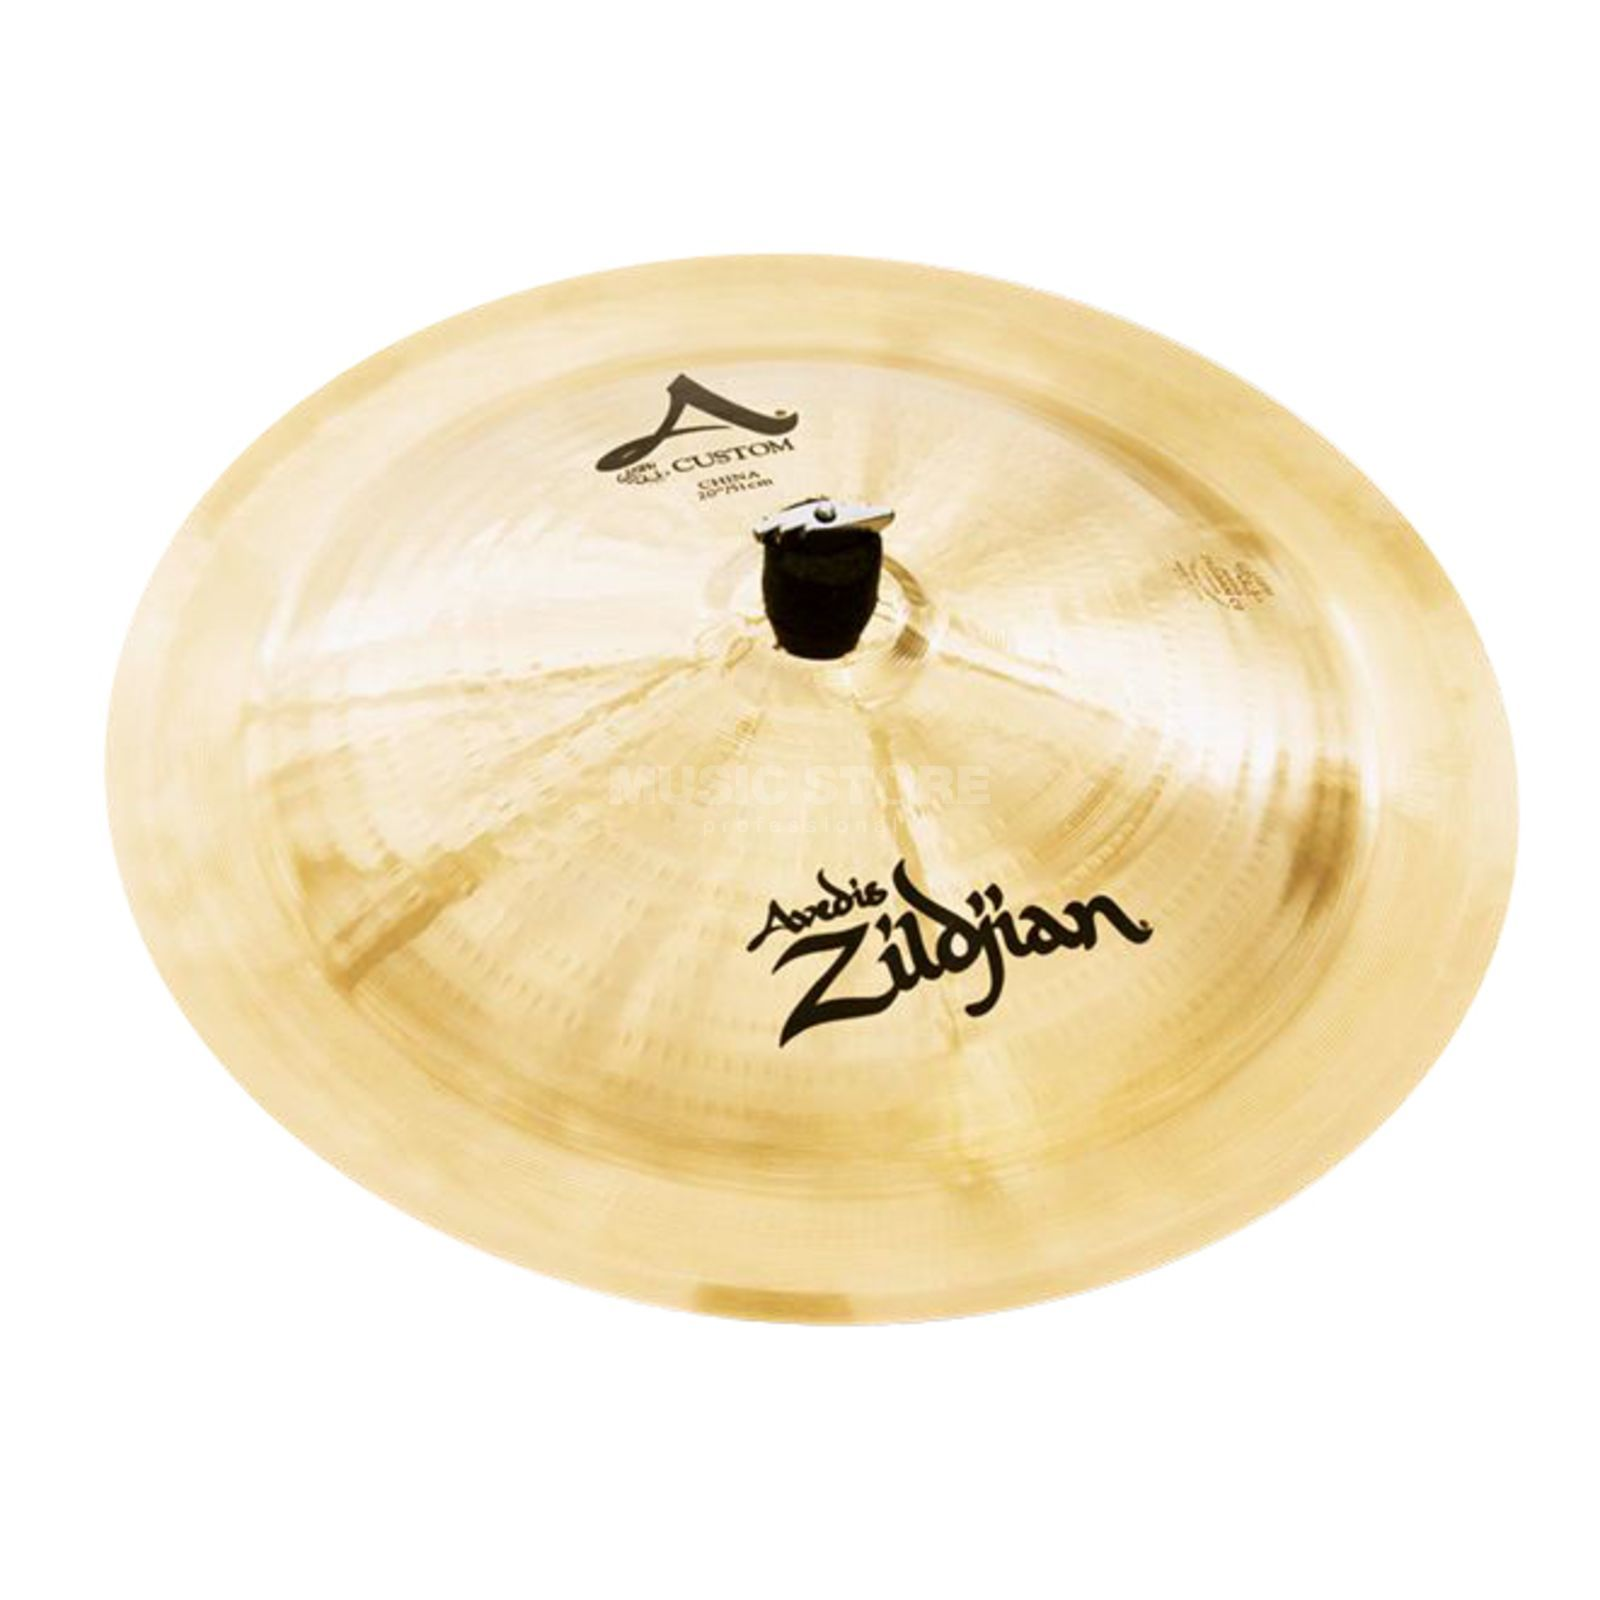 "Zildjian A-Custom China 20"" Brilliant Finish Produktbild"